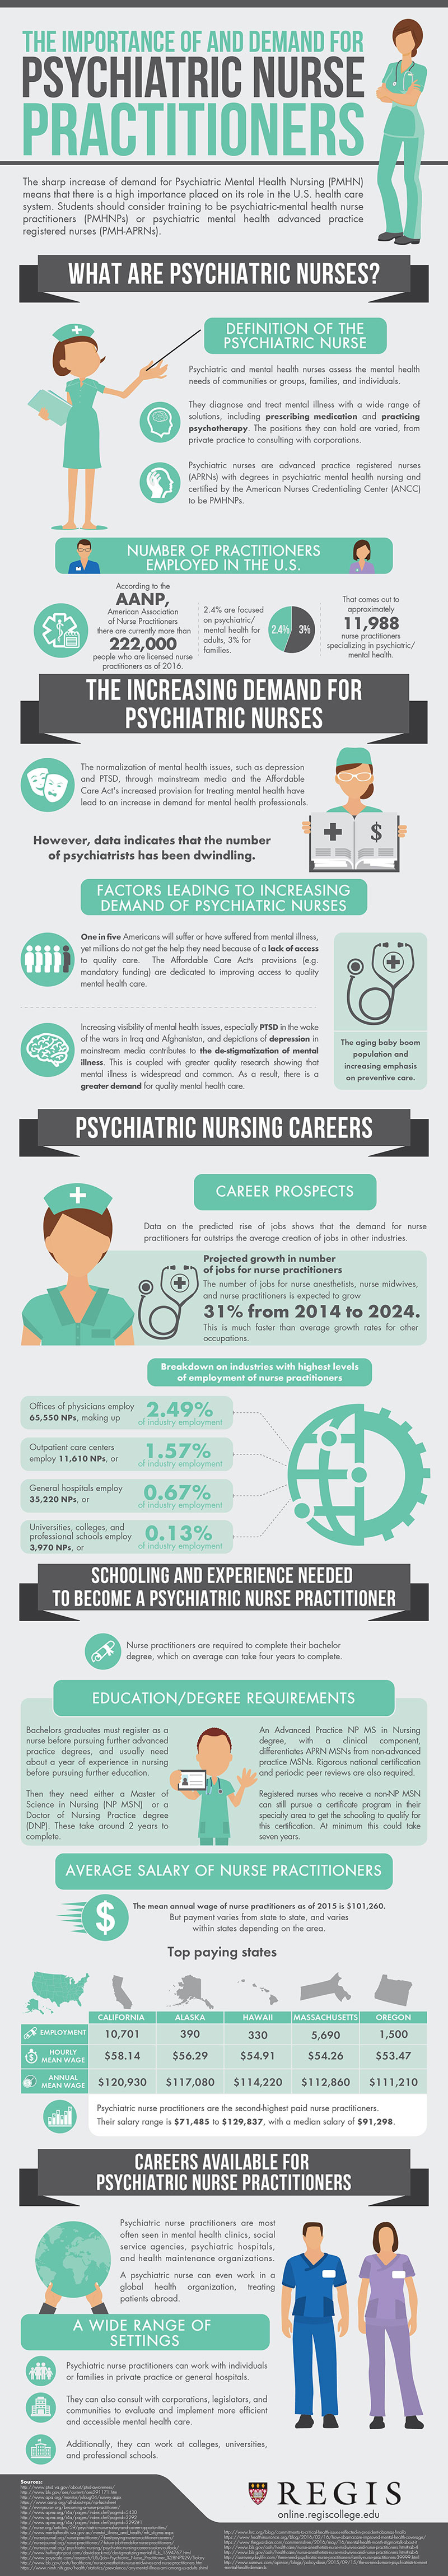 The High Importance And Demand Of Psychiatric Nurses Regis College